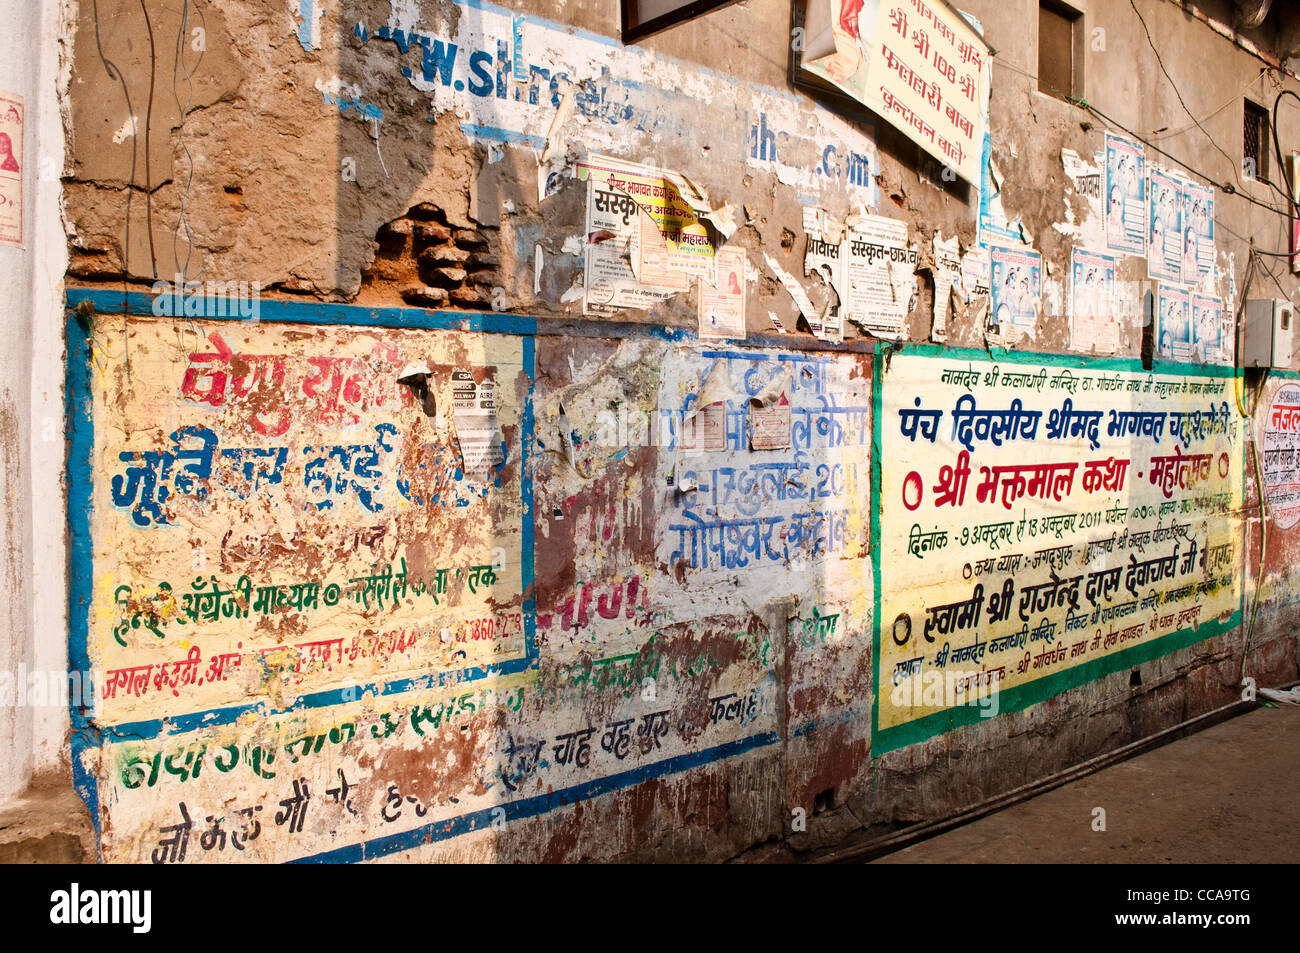 Wall covered with advertisements, Vrindavan, Uttar Pradesh, India - Stock Image